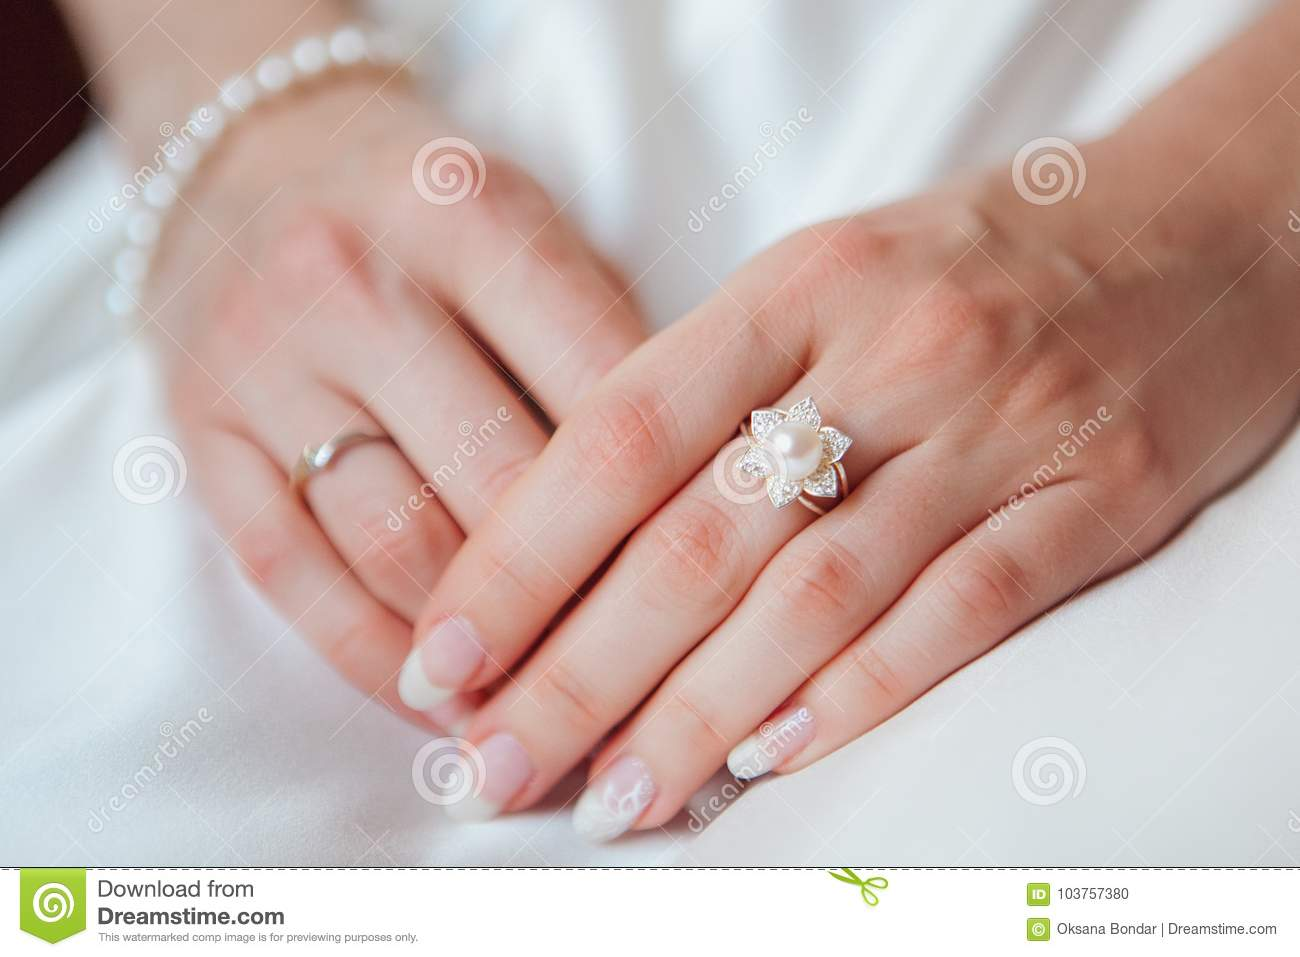 Bride Hand With Diamond Ring On White Dress Stock Photo - Image of ...